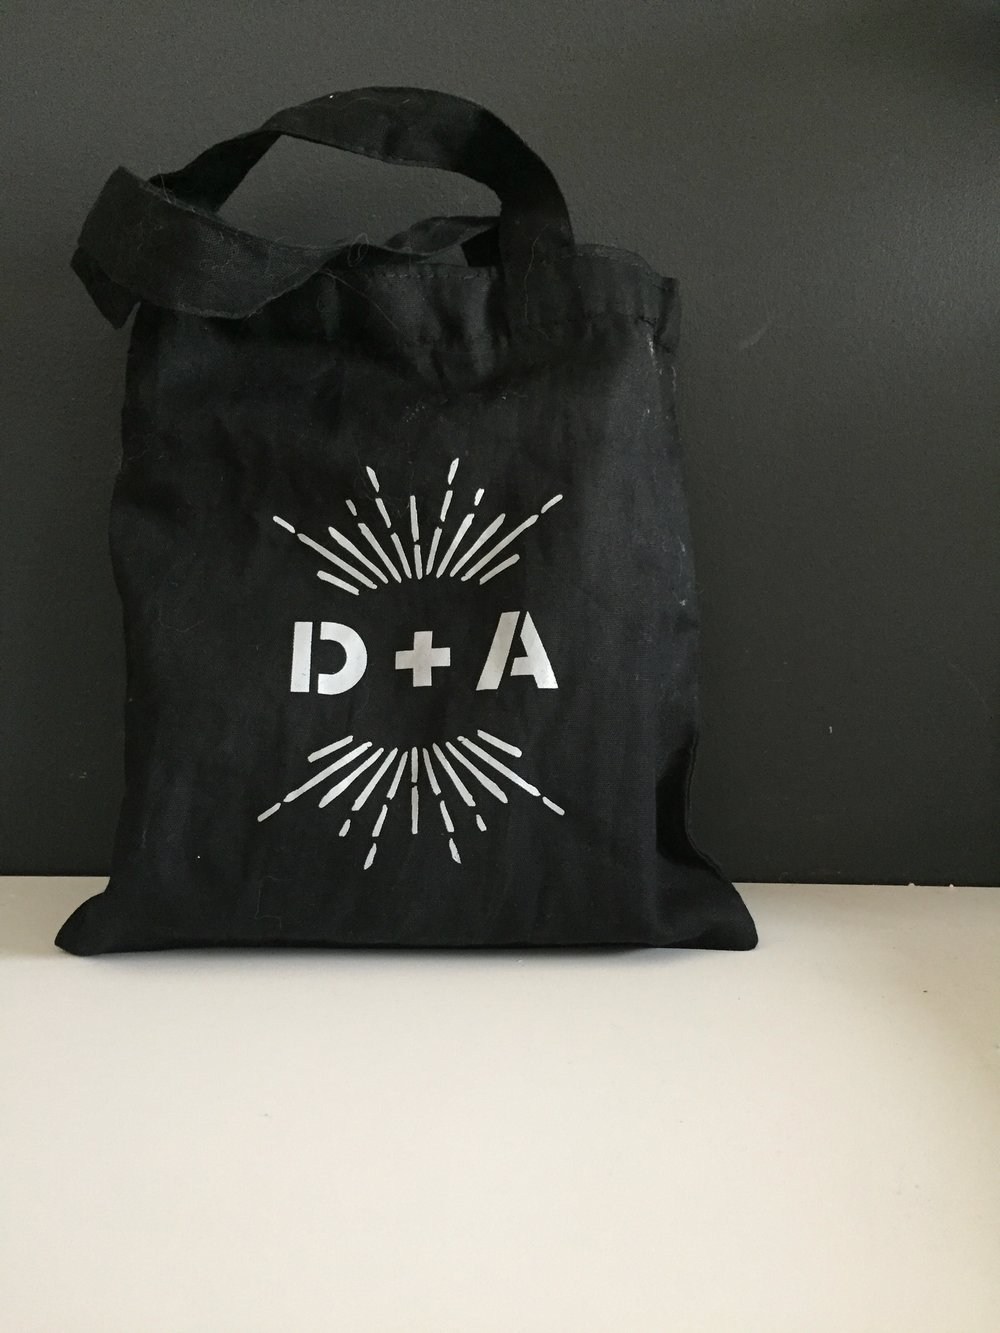 The logo carried all the way through all the day of pieces including these cotton tote bags for guests' hotel rooms!